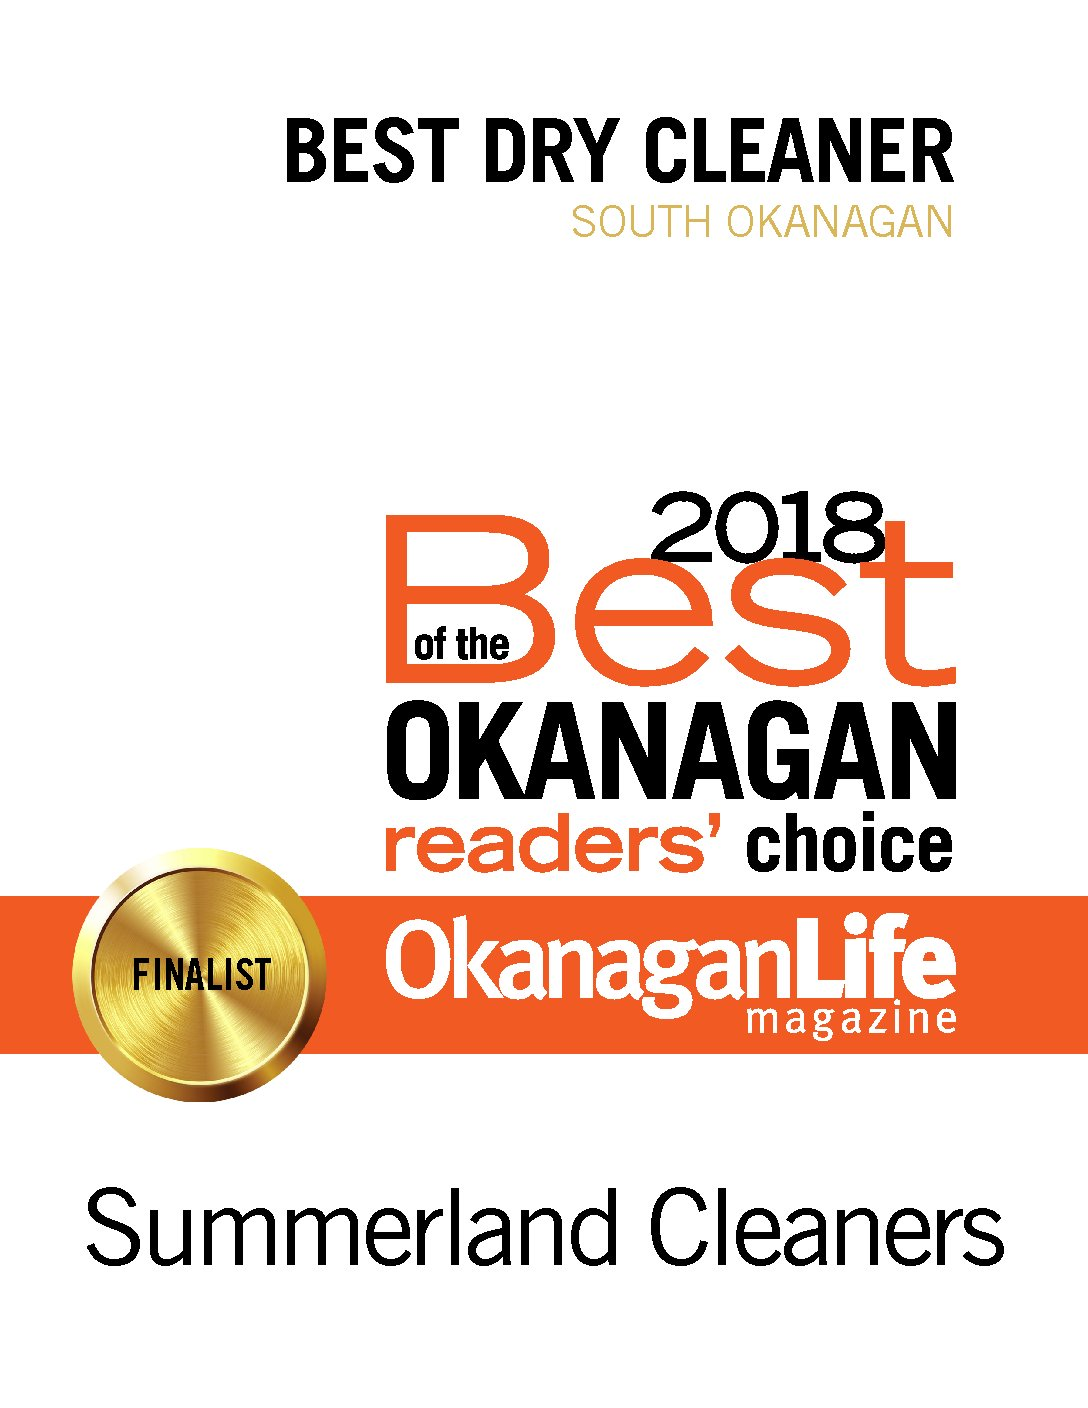 Summerland Cleaners